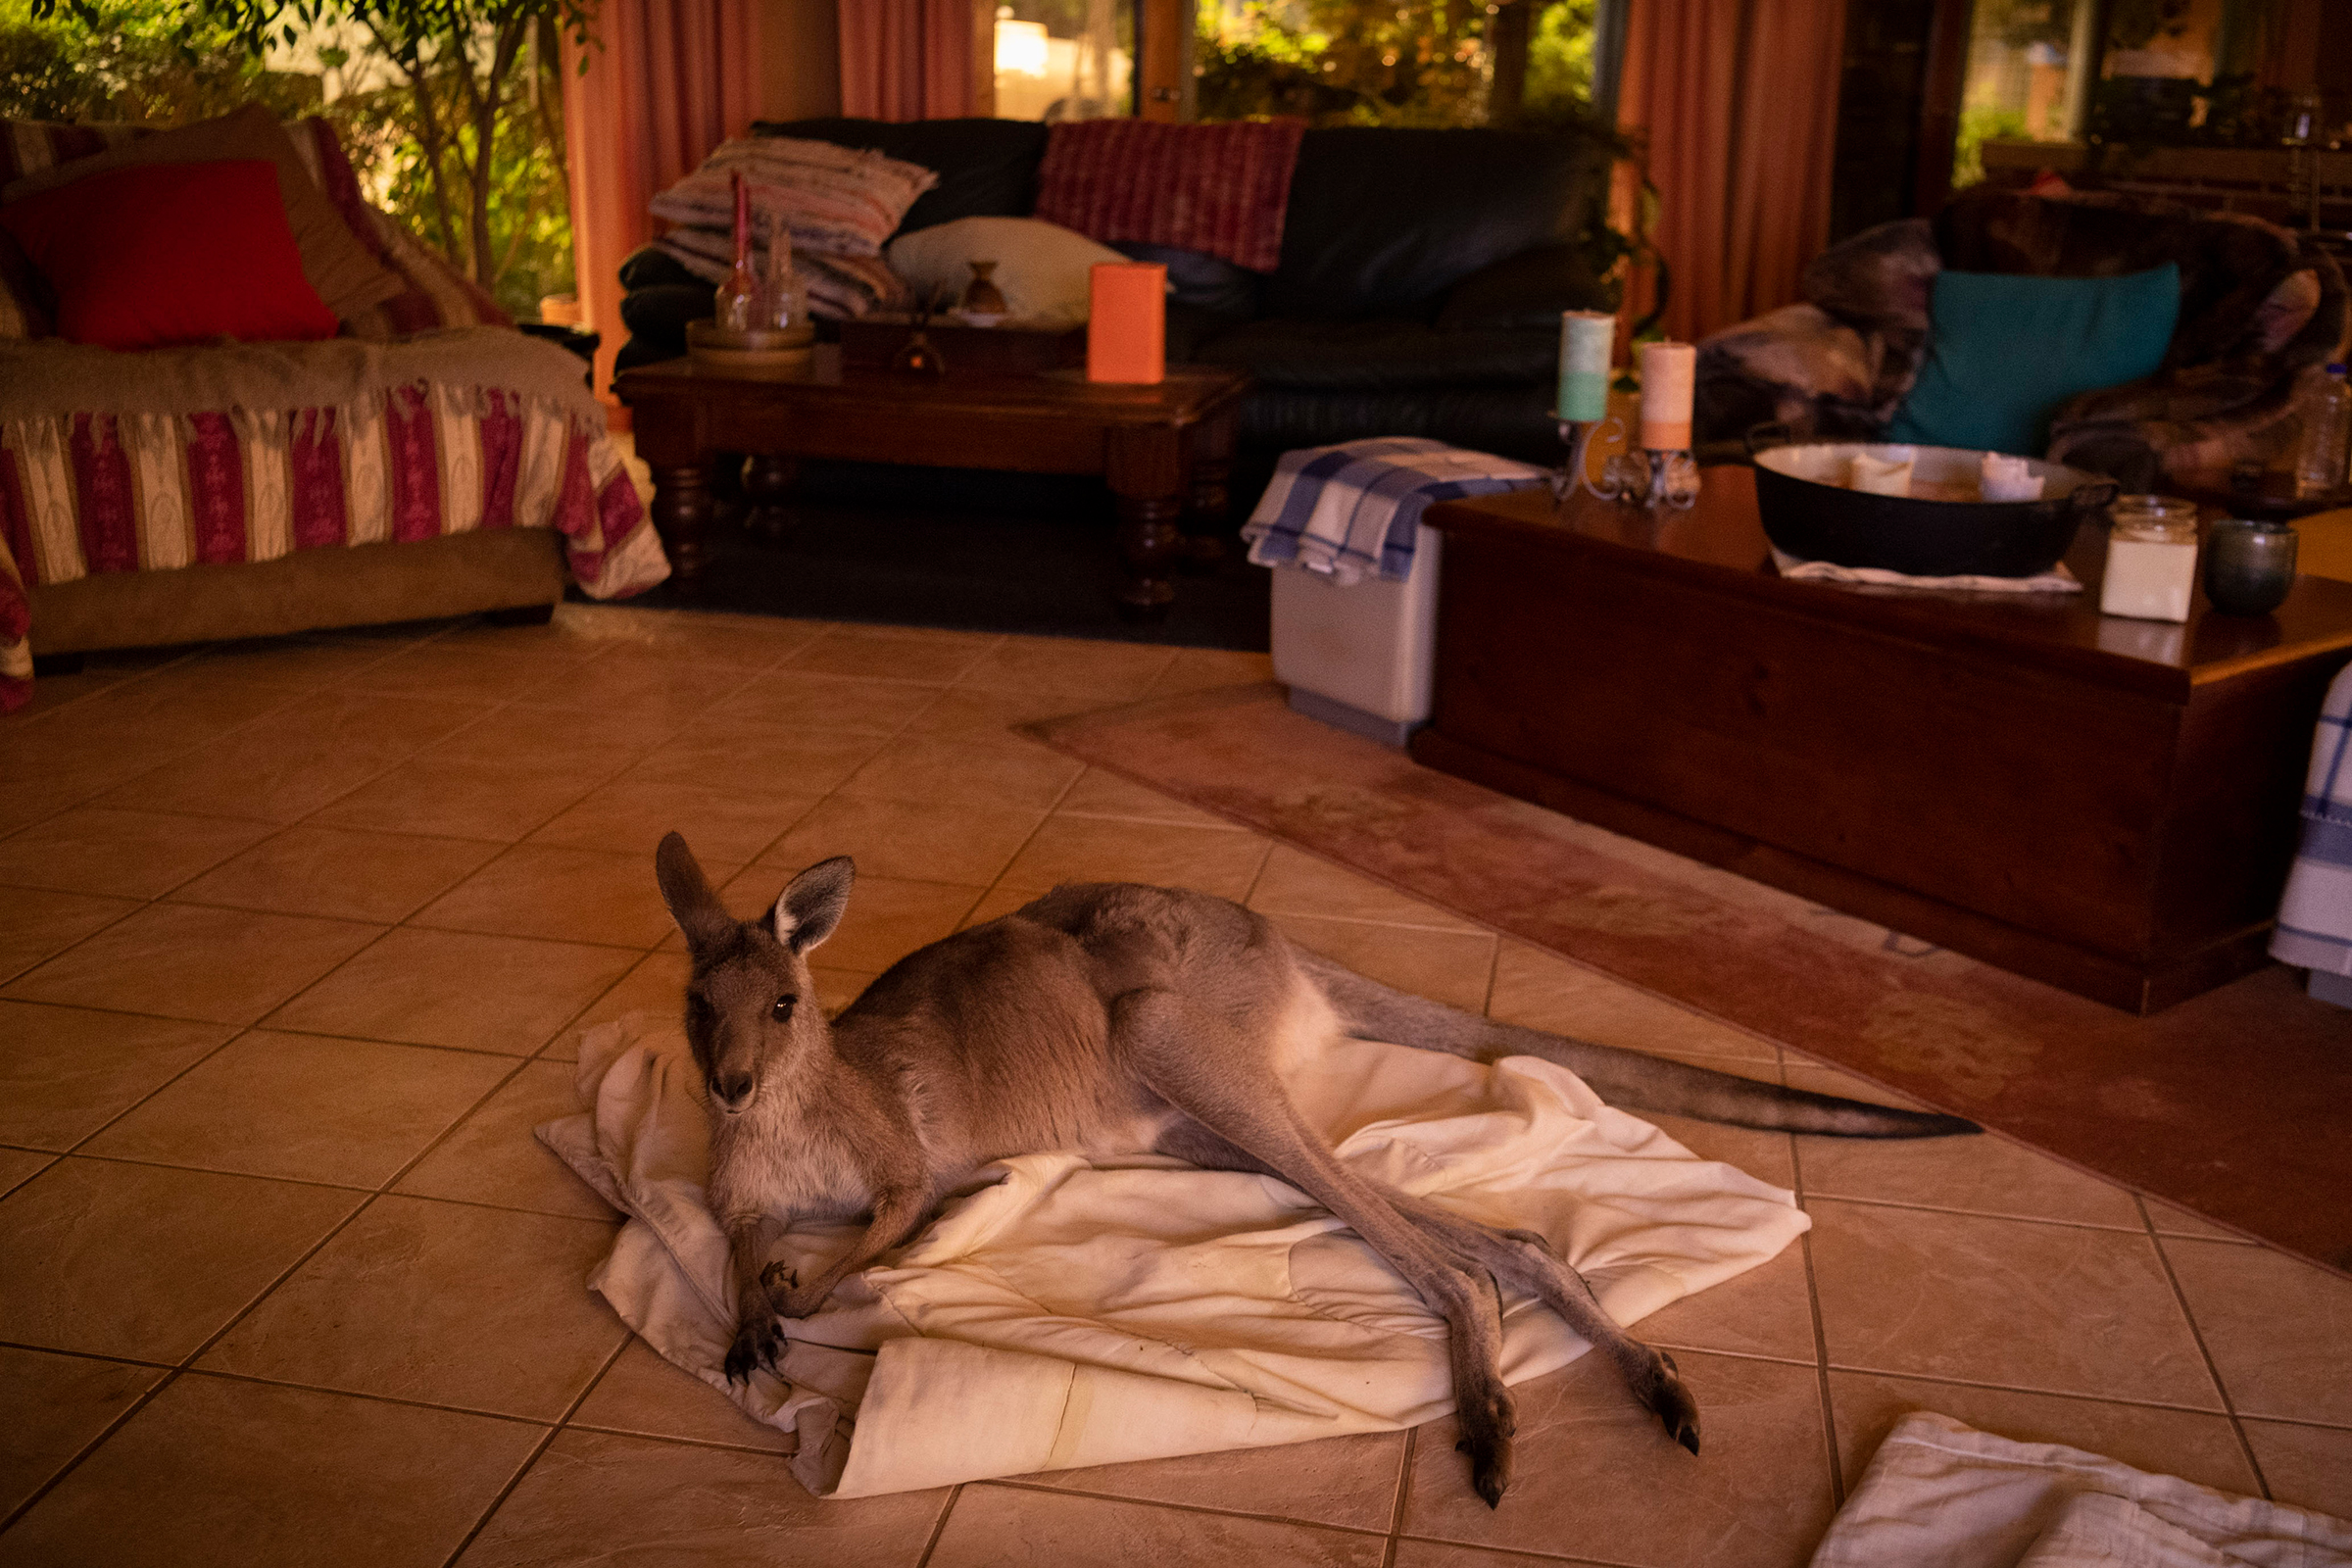 Mim, a female Eastern Grey Kangaroo, was hand-fed by a local family and decided to take shelter in their home on the outskirts of Kulnura, New South Wales, on Dec. 6, 2019.